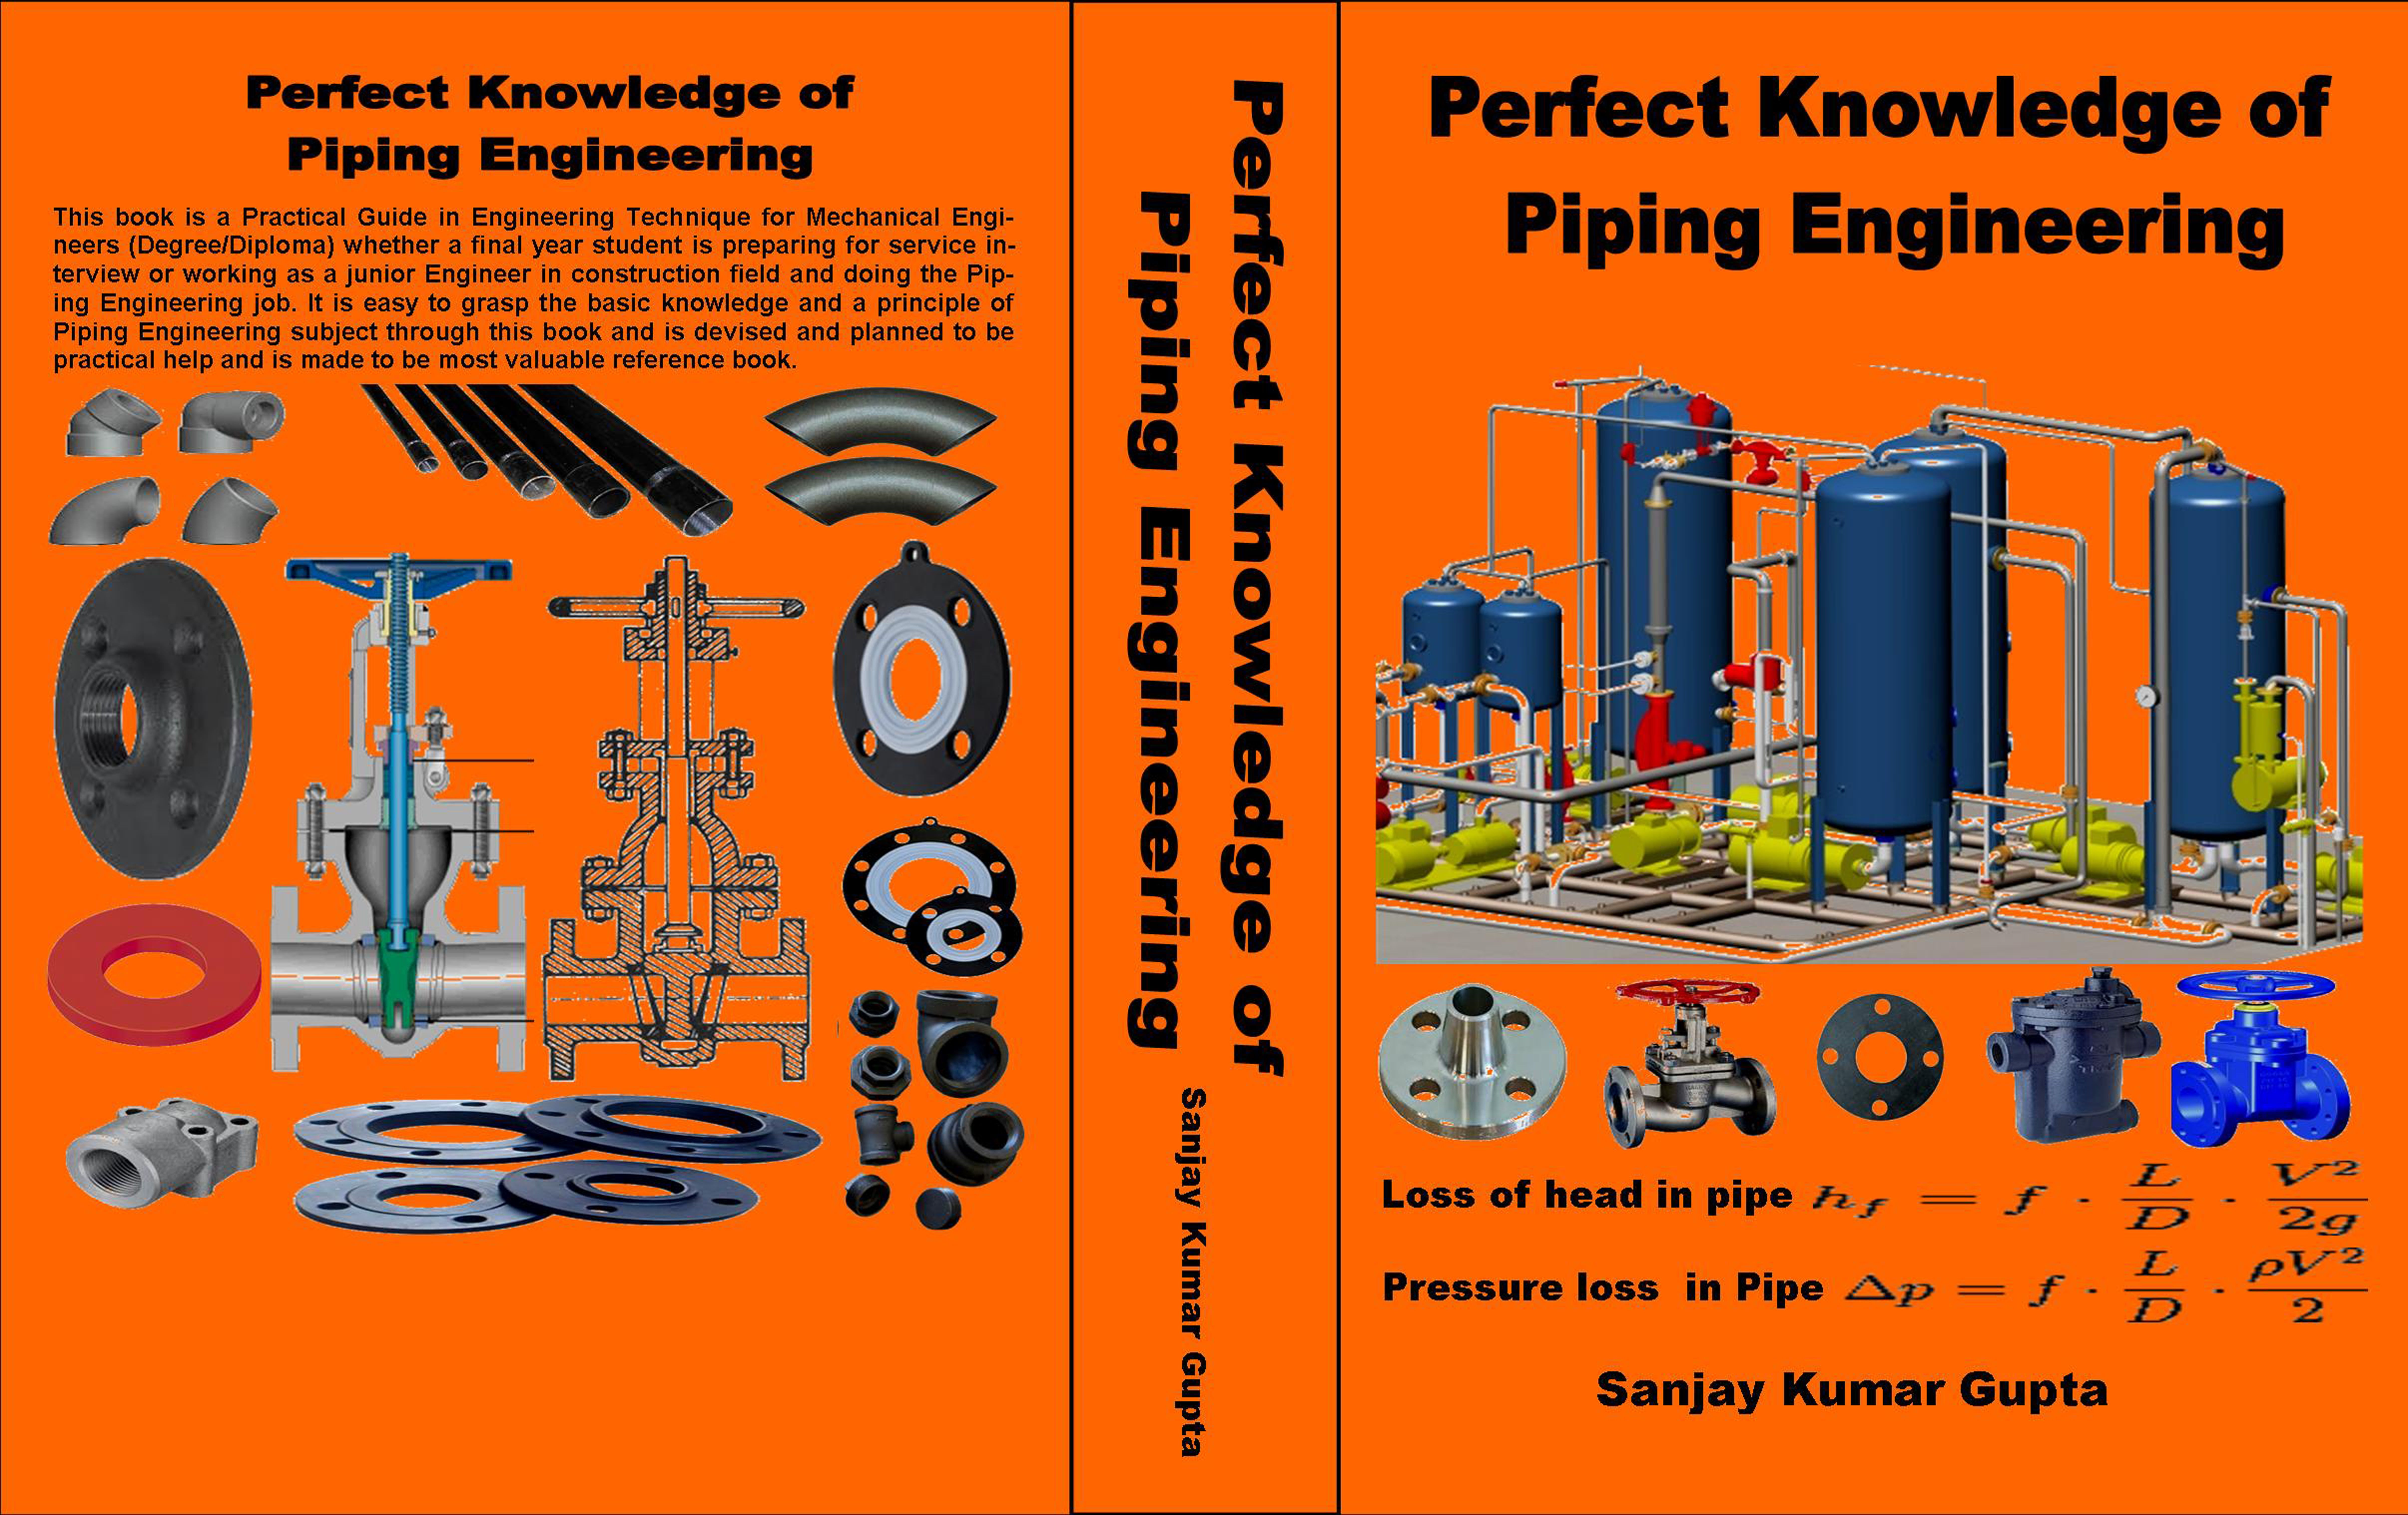 Piping Engineering is one kind of expertise in piping design, fabrication,  erection, inspection and 'quality control' to improve the cost  effectiveness and ...